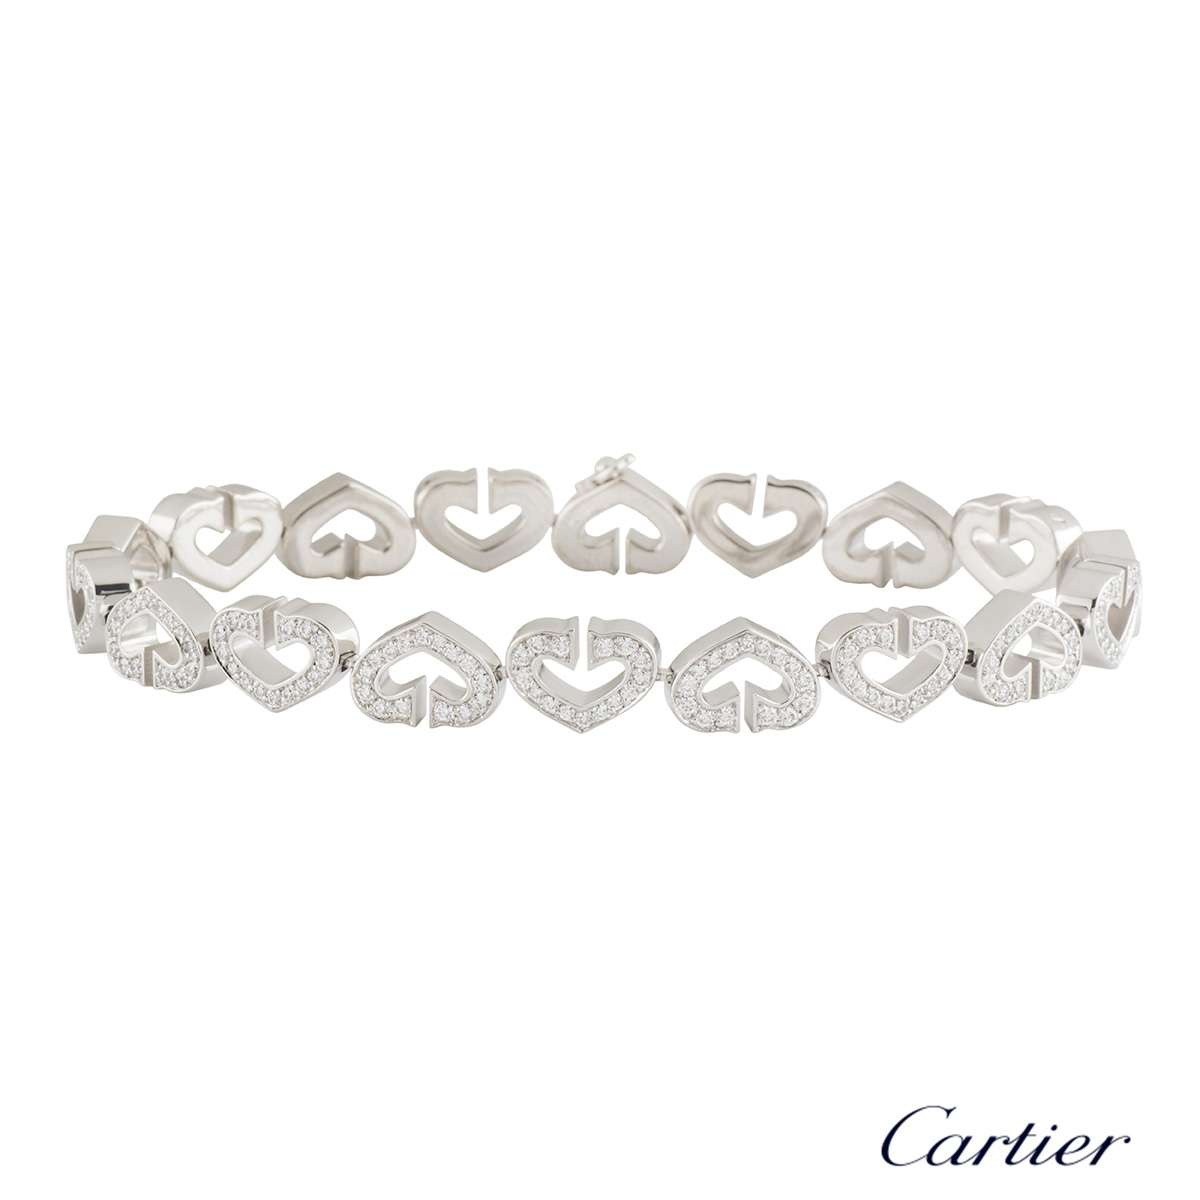 Cartier White Gold Diamond Hearts and Symbols Bracelet 1.81ct F+/VS+